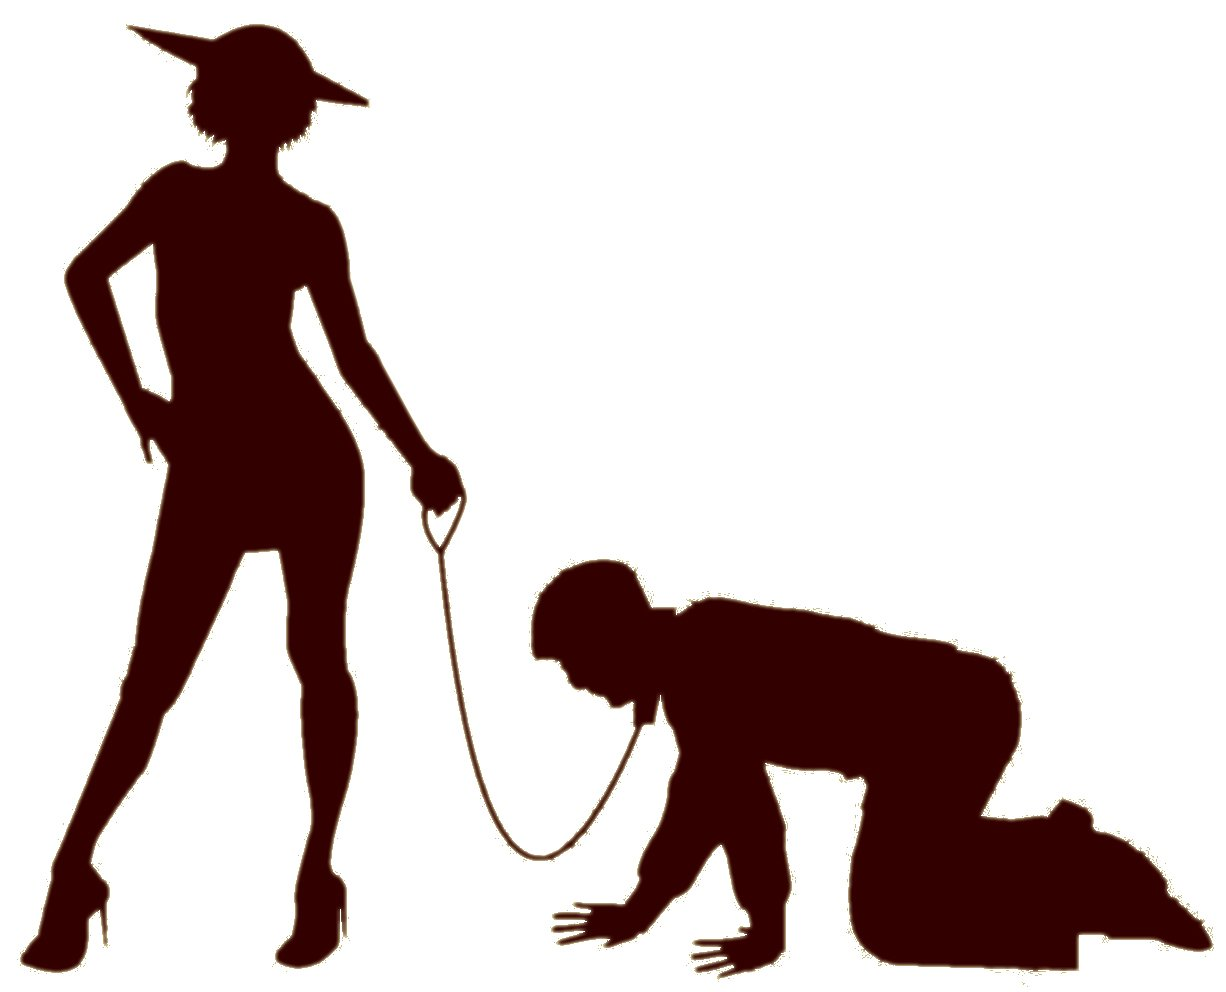 MAN ON A LEASH